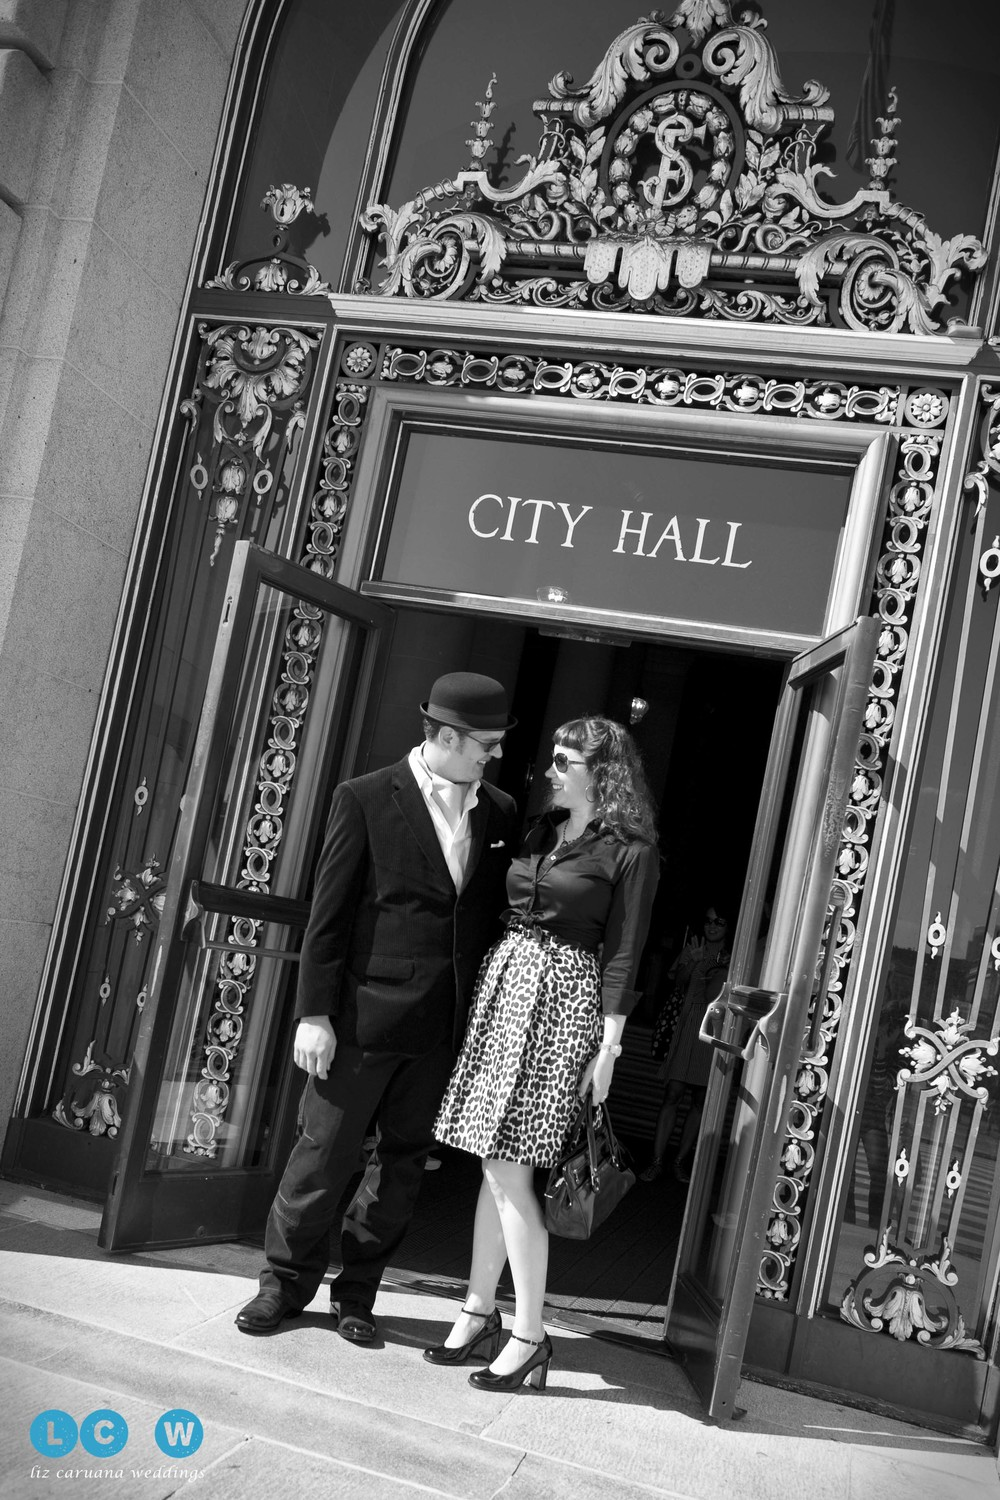 san-francisco-wedding-and-engagement-photographer-lizcaruanaweddings045.jpg